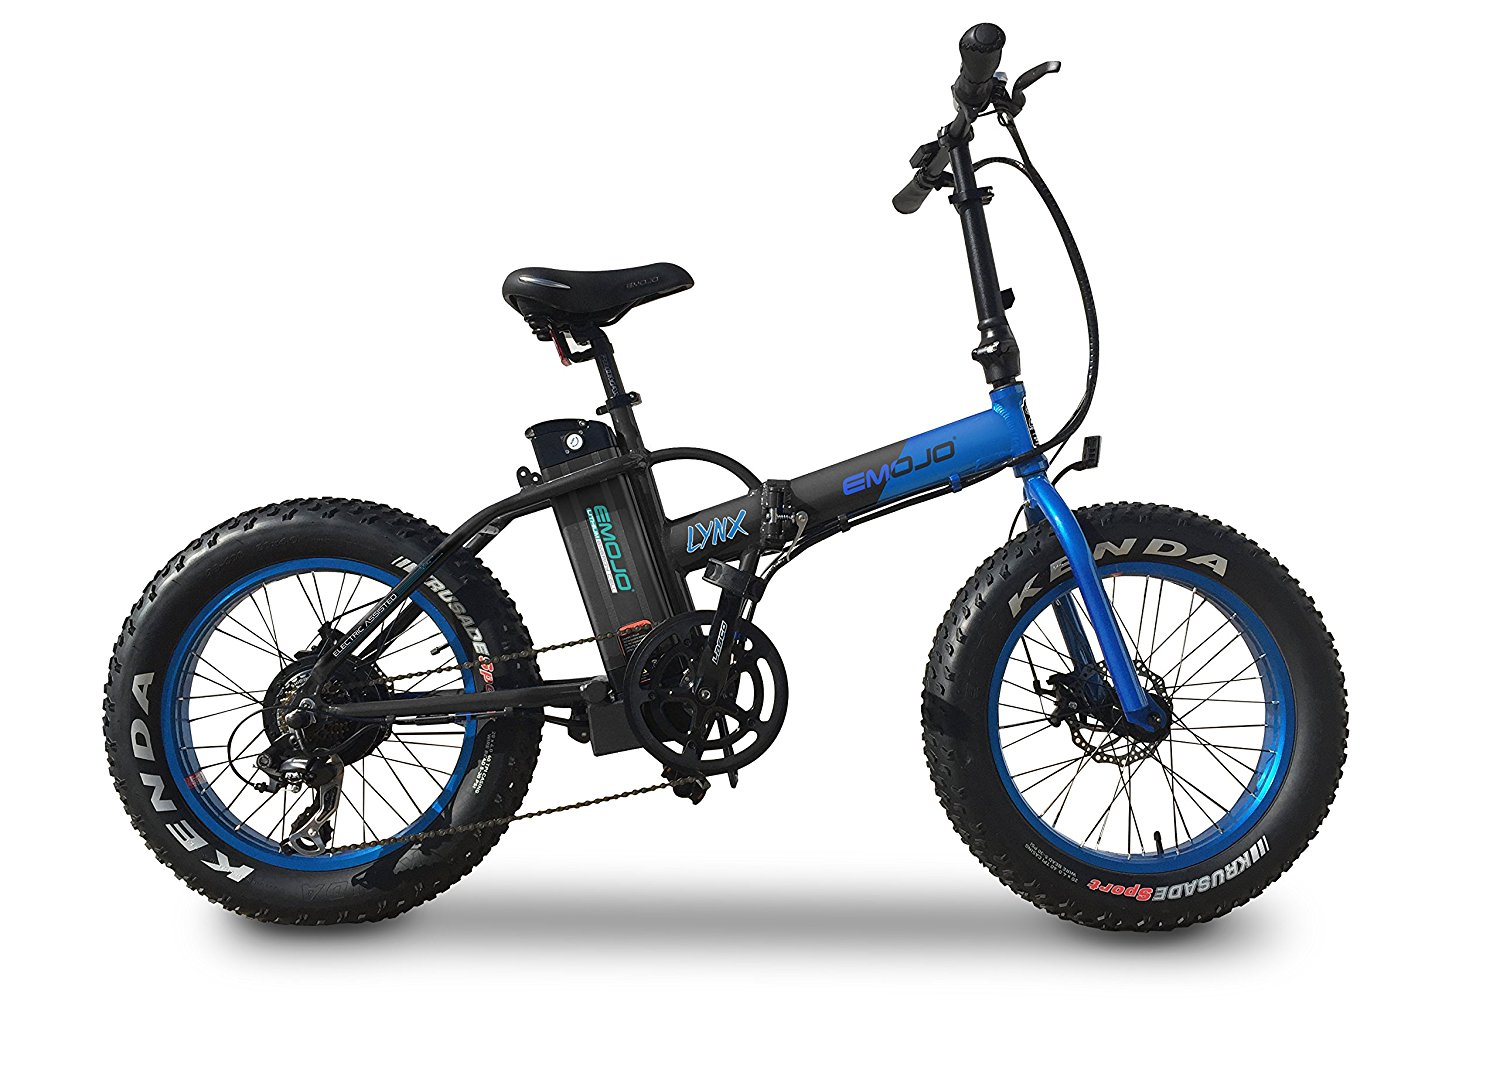 c1b07a2e024 Get Quotations · Fat Tire Folding Electric Mountain Bicycle Beach Snow  Bicycle 500W 36V Bafang Motor 10.4AH Lithium